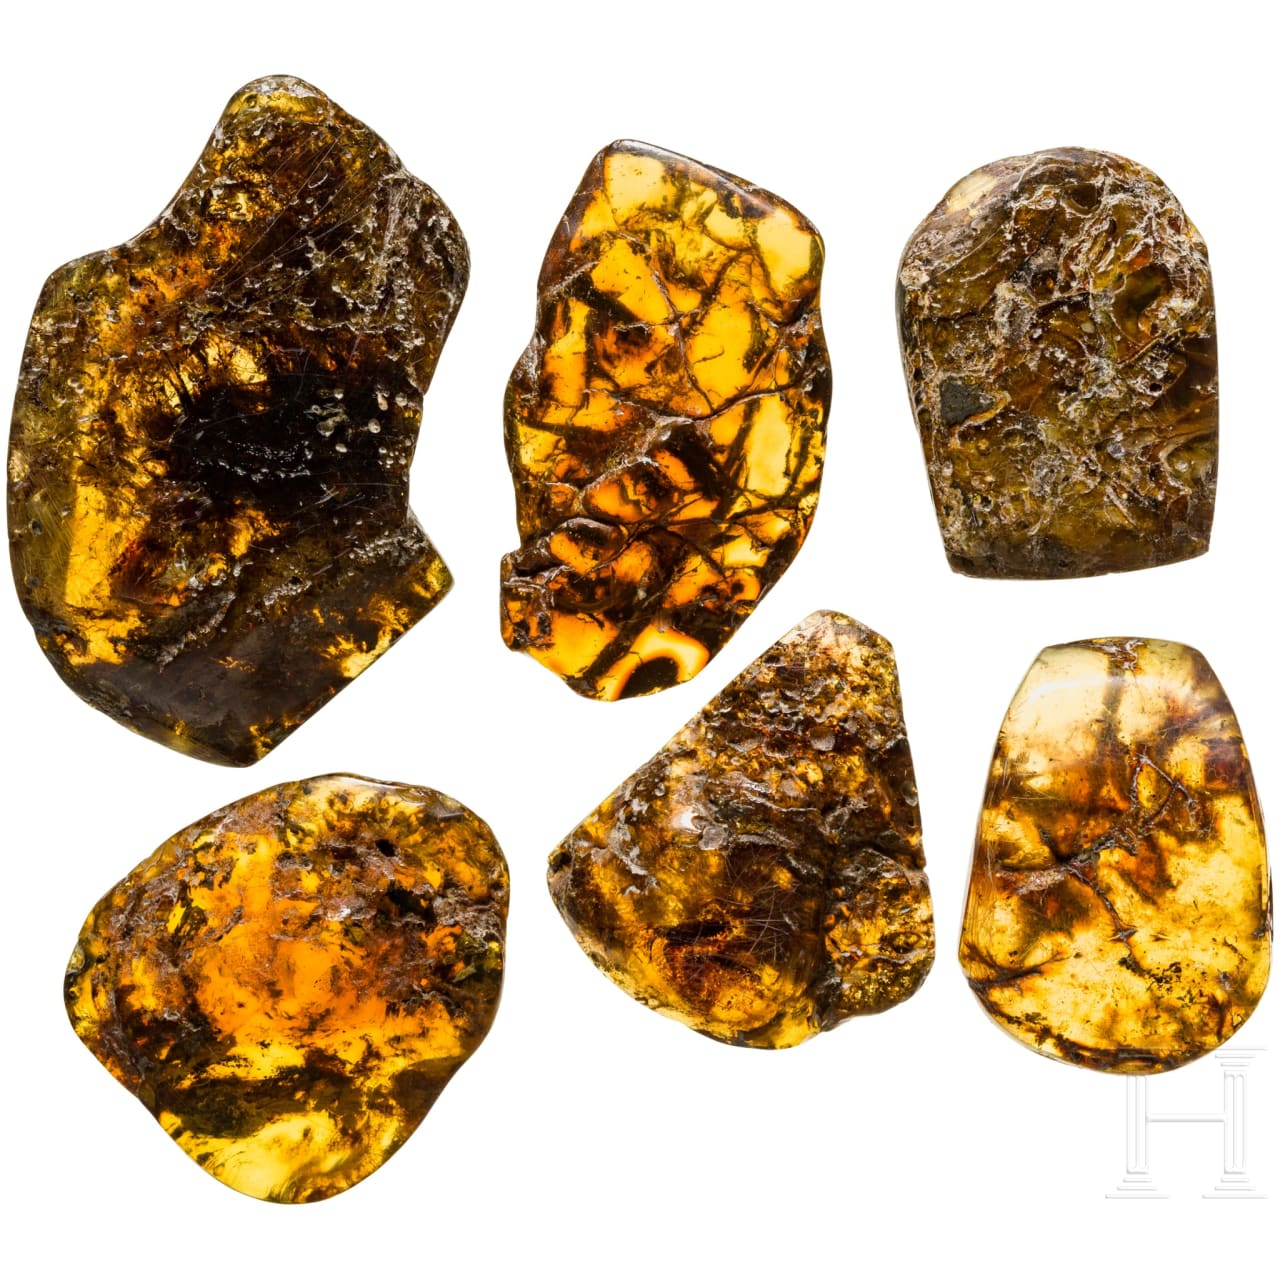 Six pieces of native amber